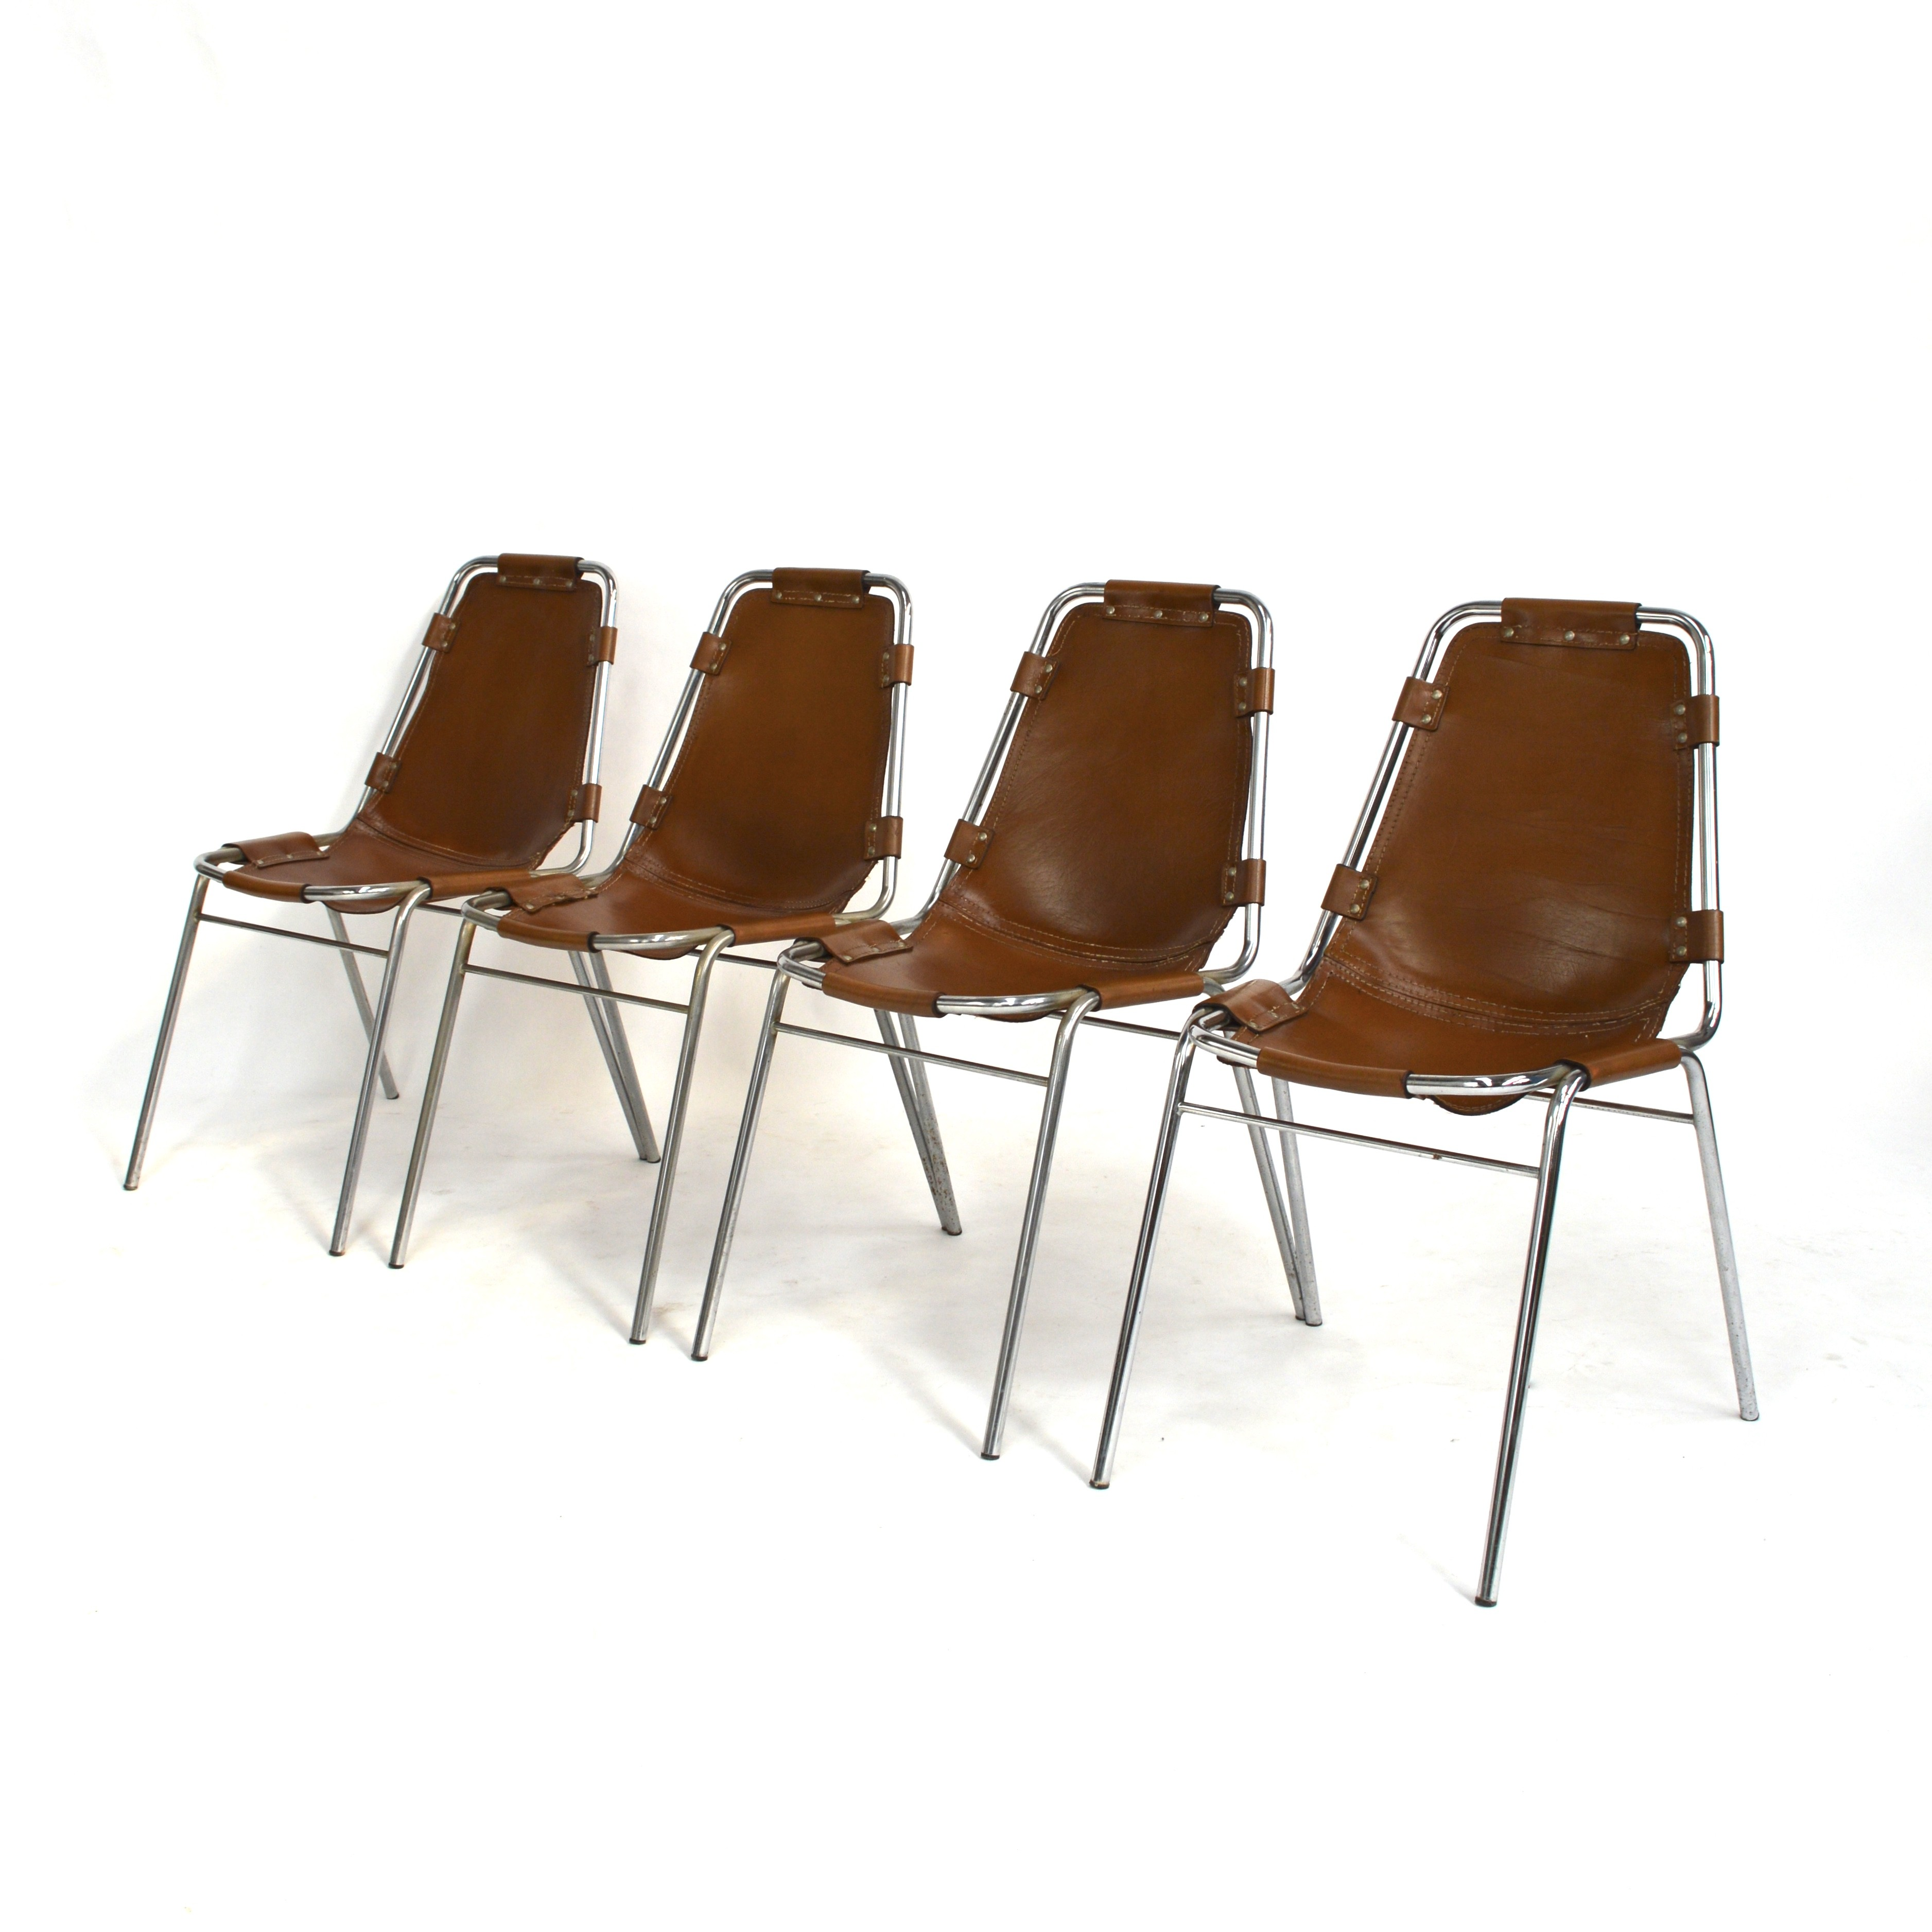 Set Of 4 Quot Les Arcs Quot Chairs By Charlotte Perriand 1970s